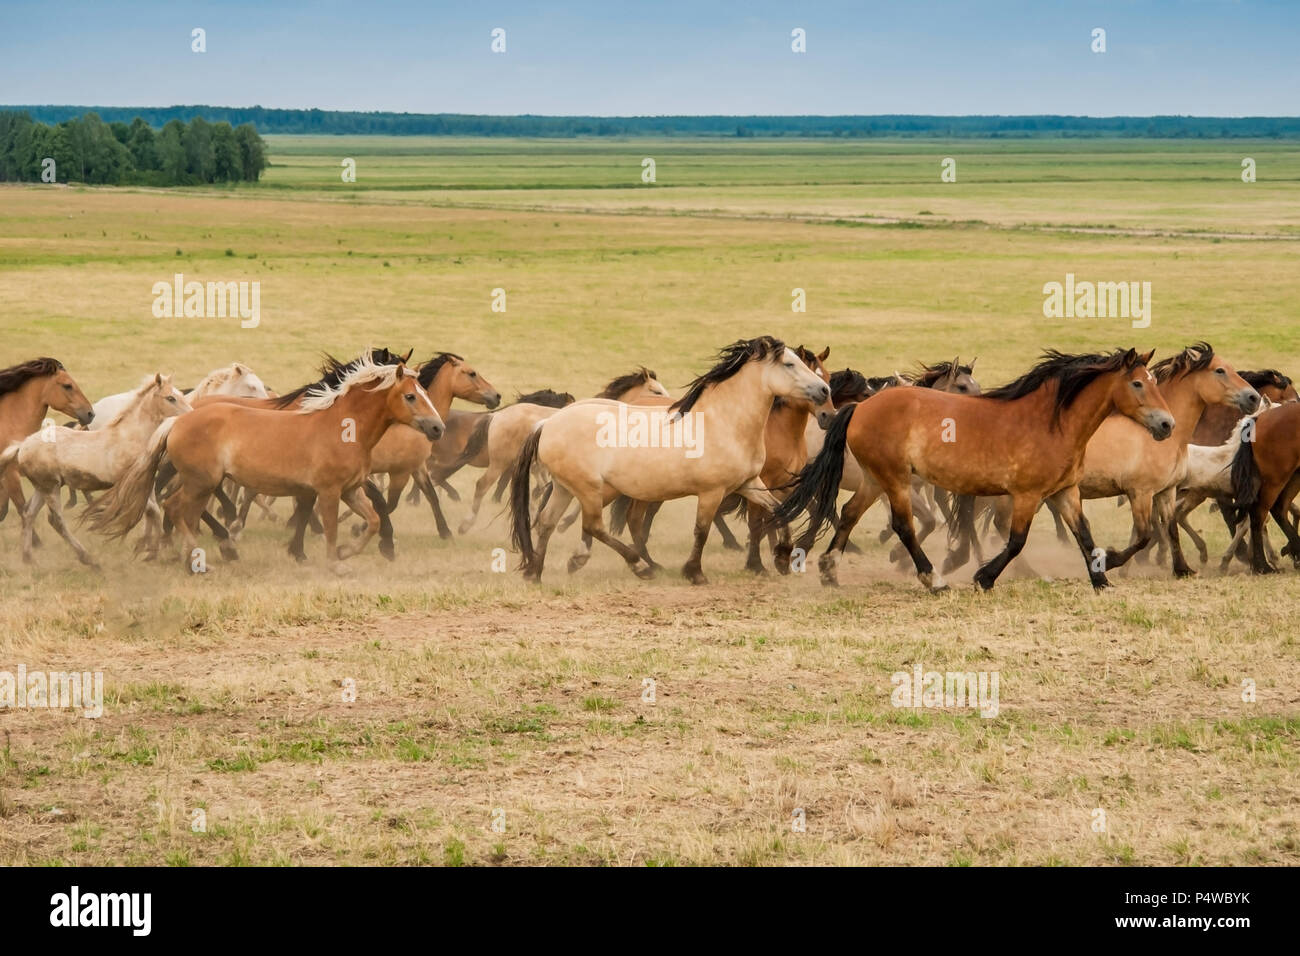 Running herd of horses to the right side of the field - Stock Image